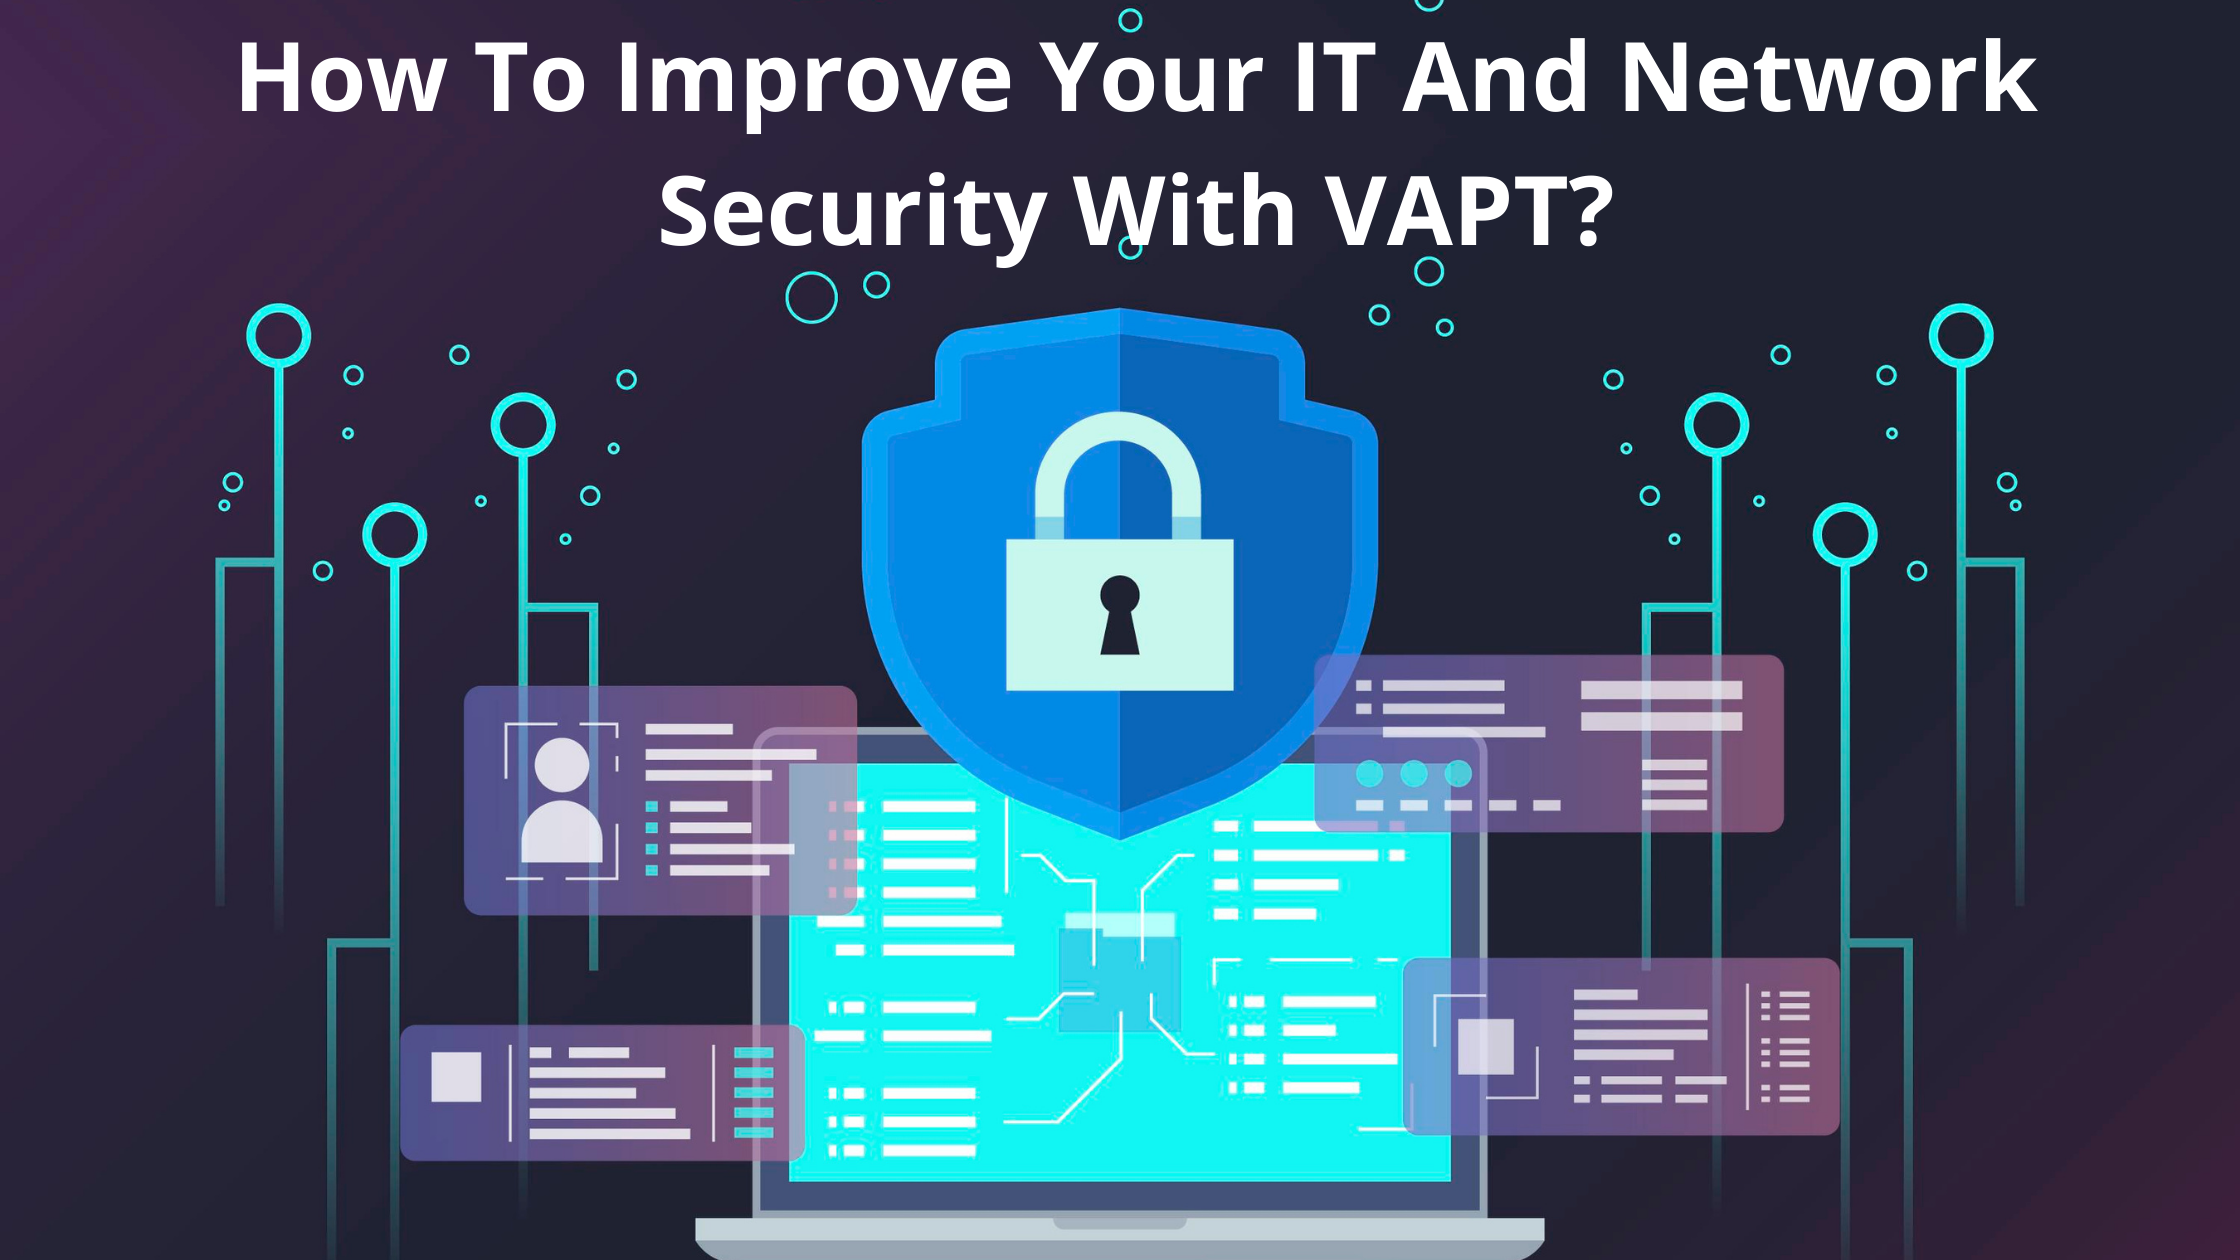 How to improve your IT and network security with VAPT?